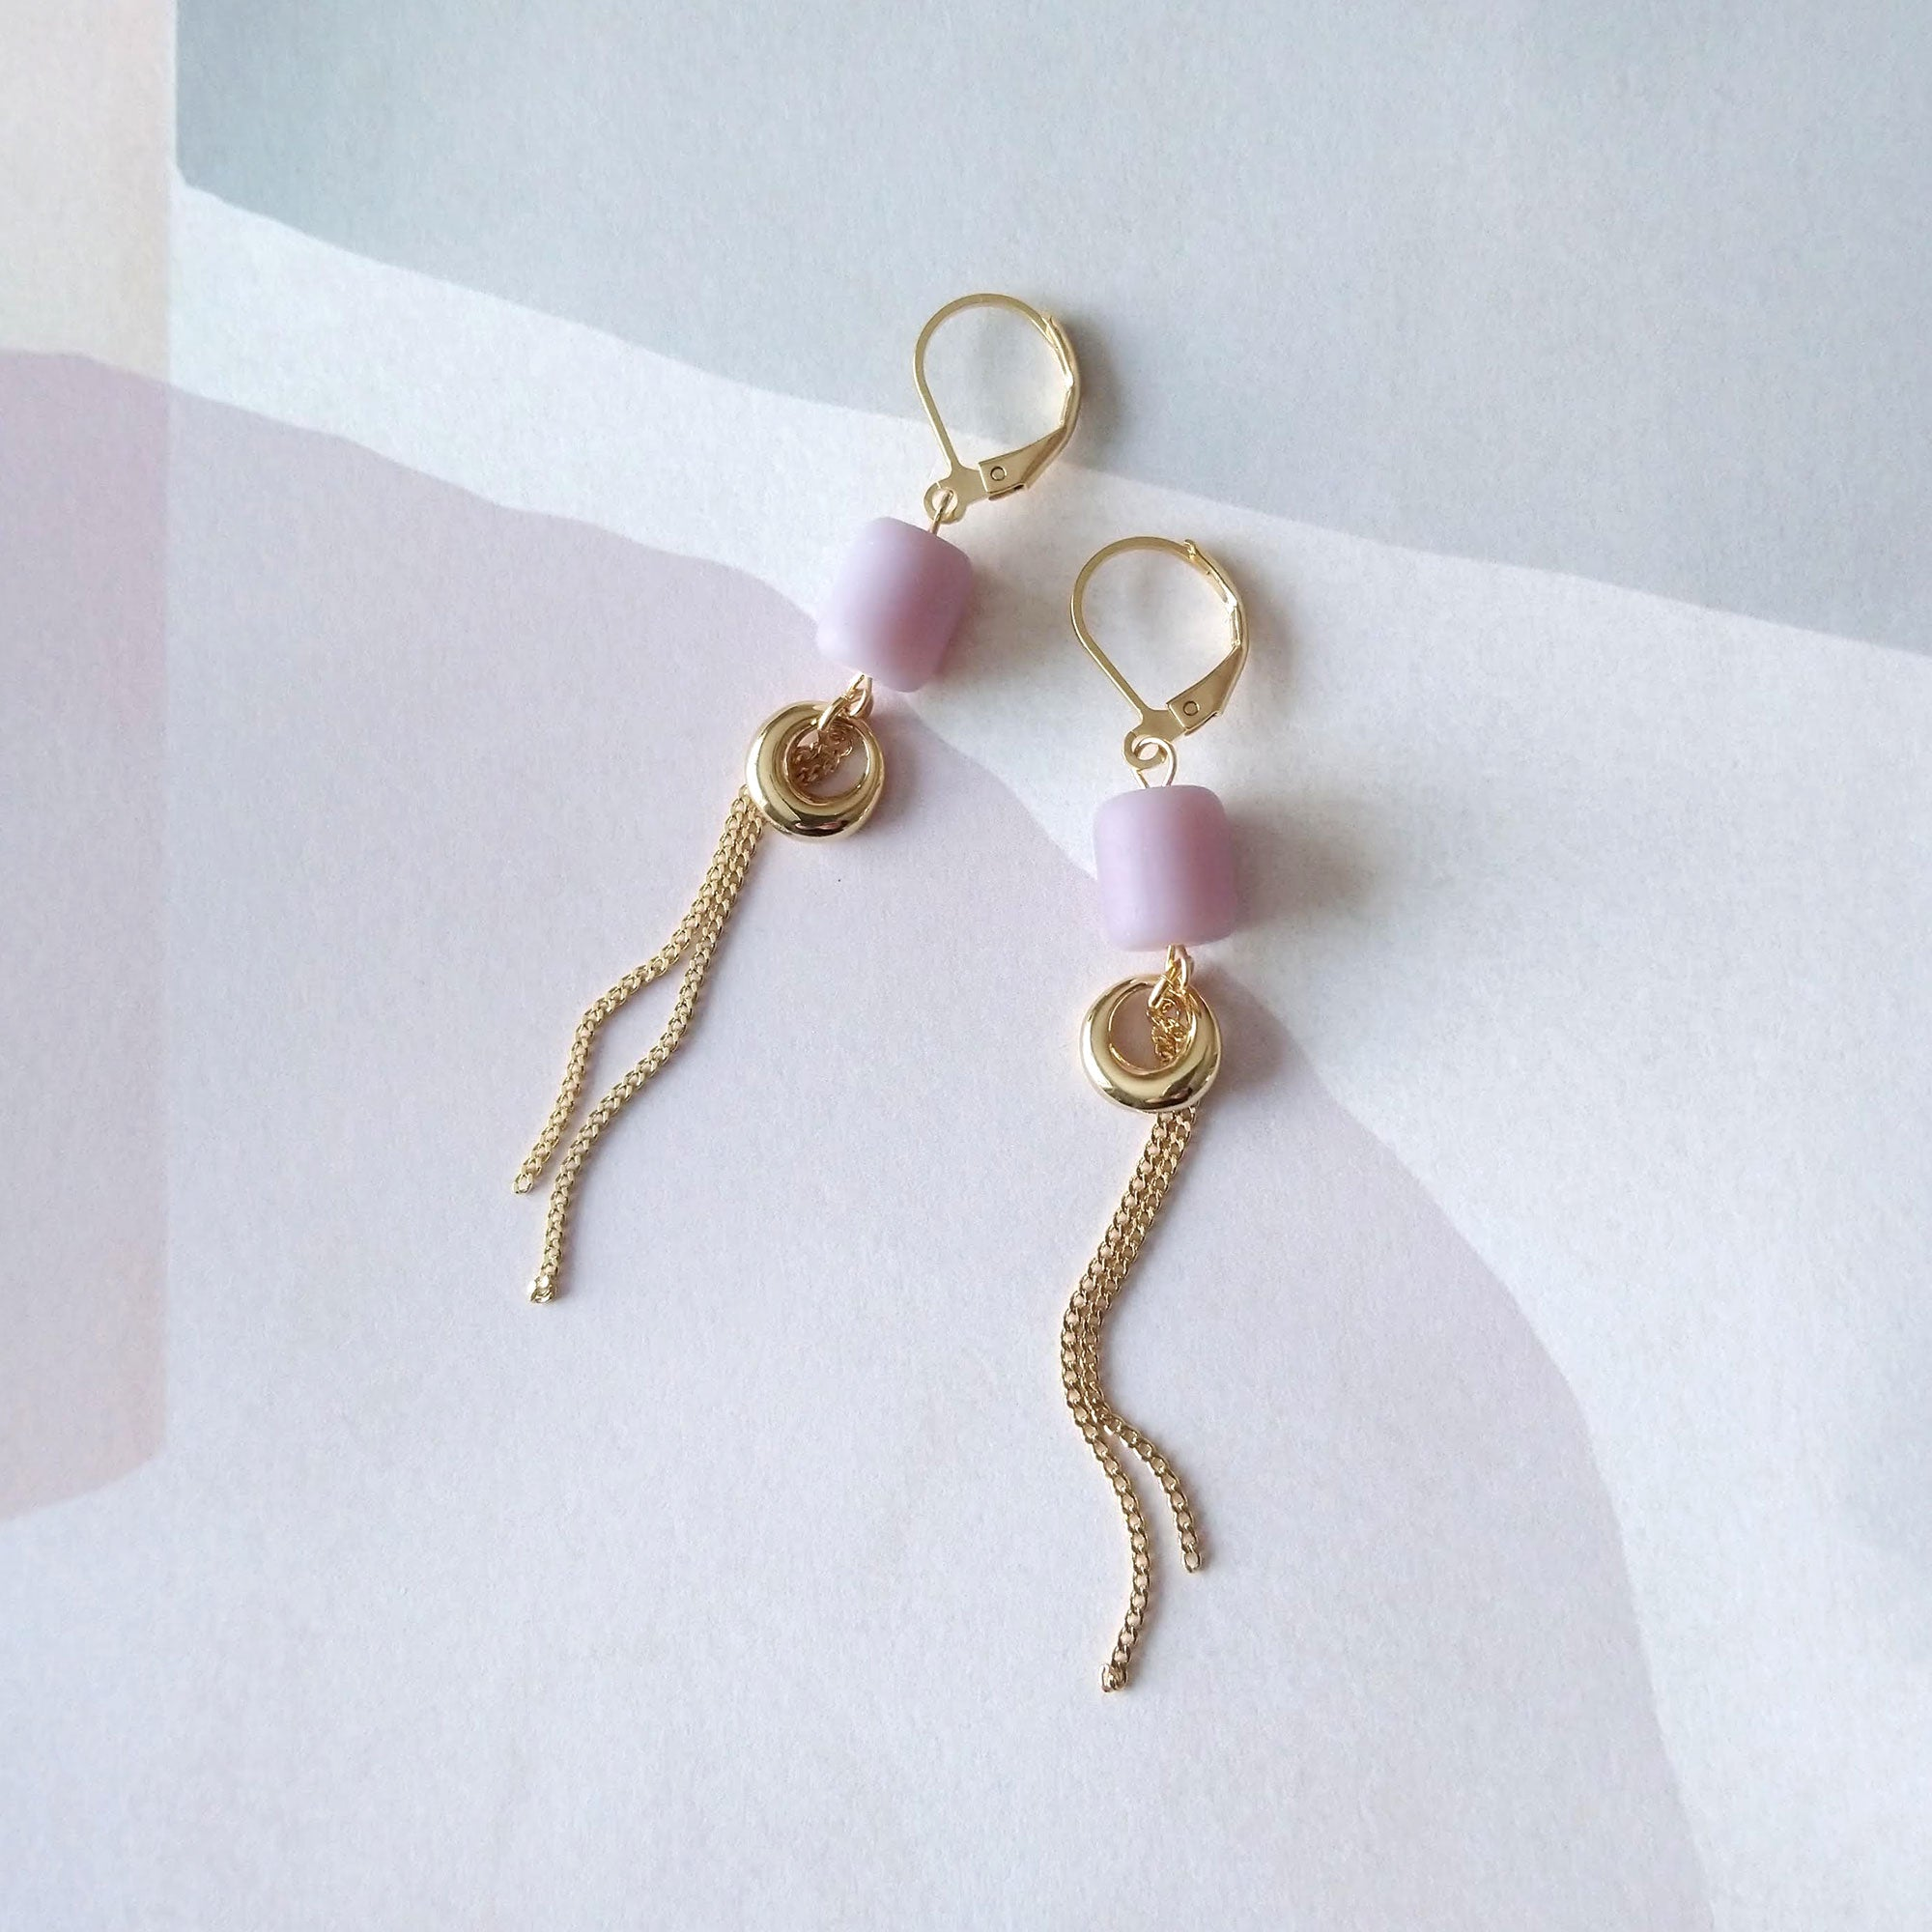 hypoallergenic earrings lightweight